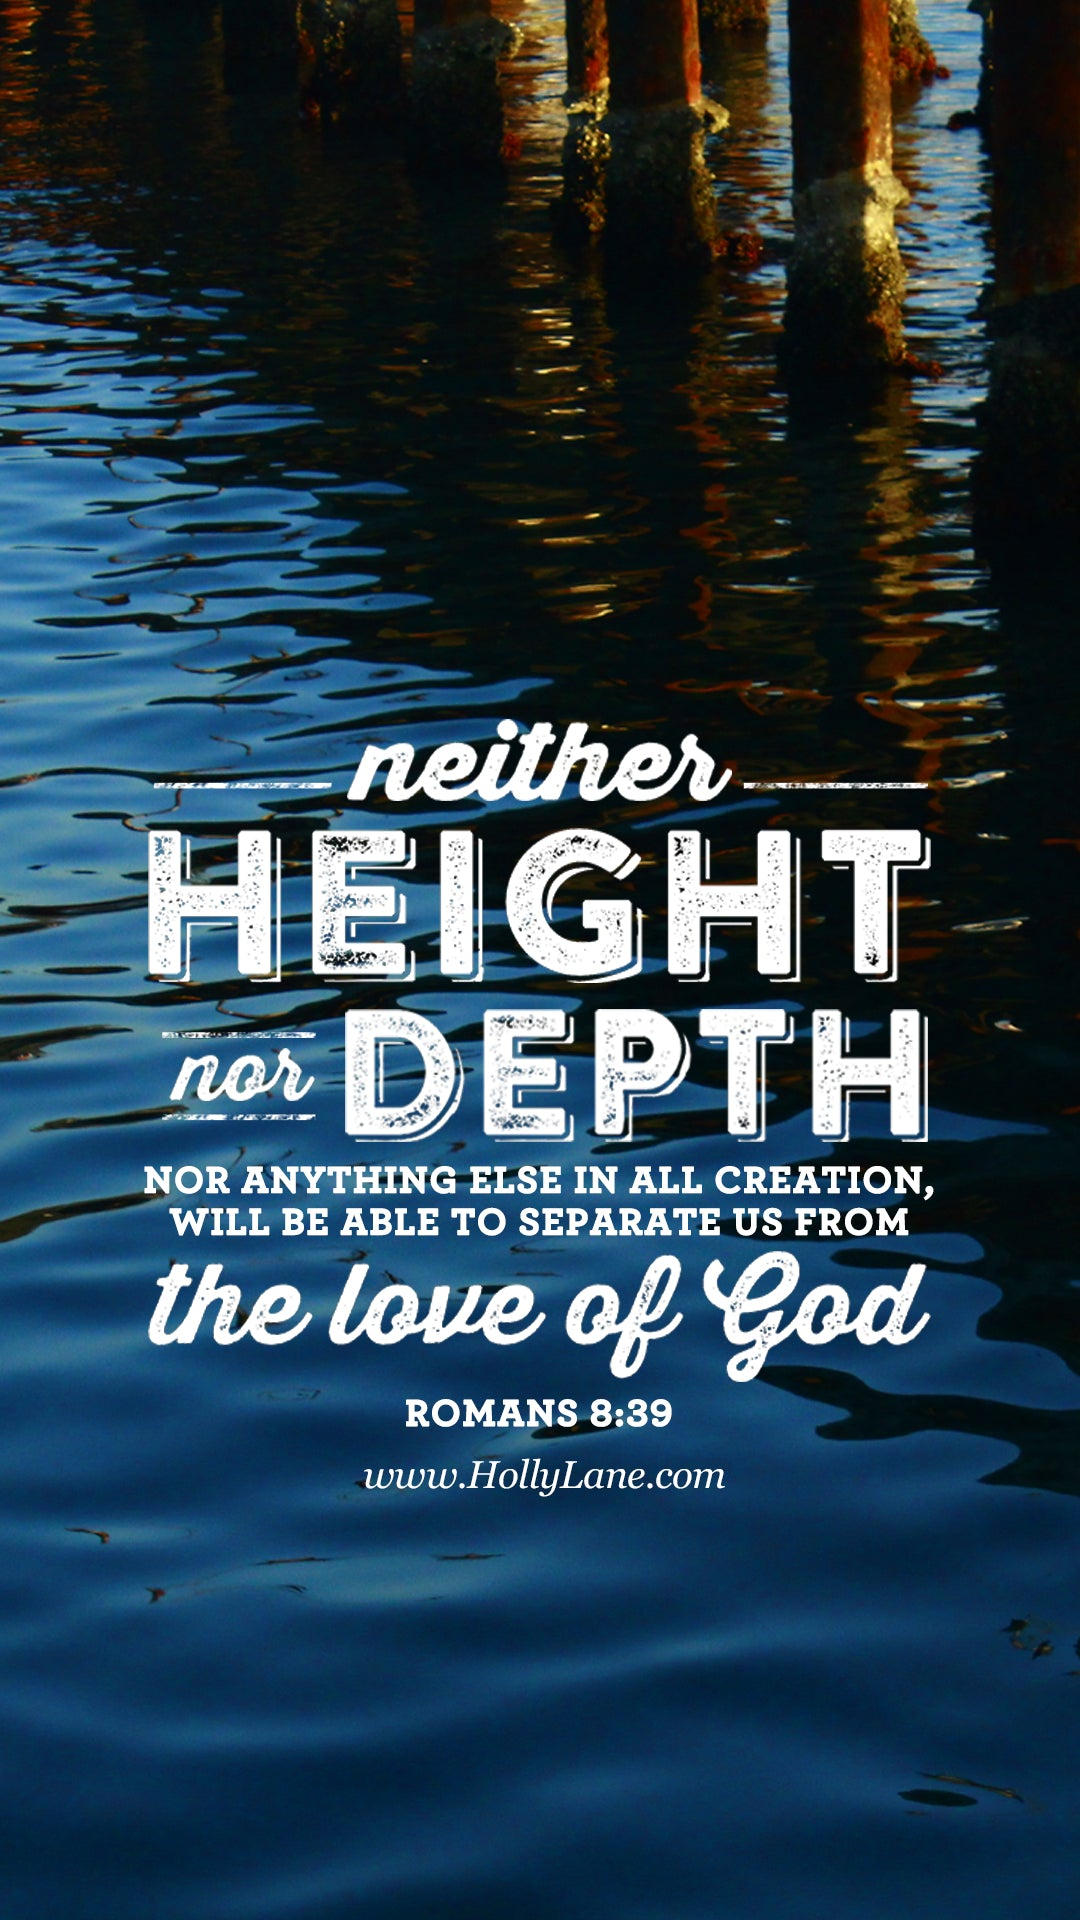 "Neither height nor depth, nor anything else in all creation, will be able to separate us from the love of God..."" Romans 8:39. Free mobile wallpaper by hollylane.com"